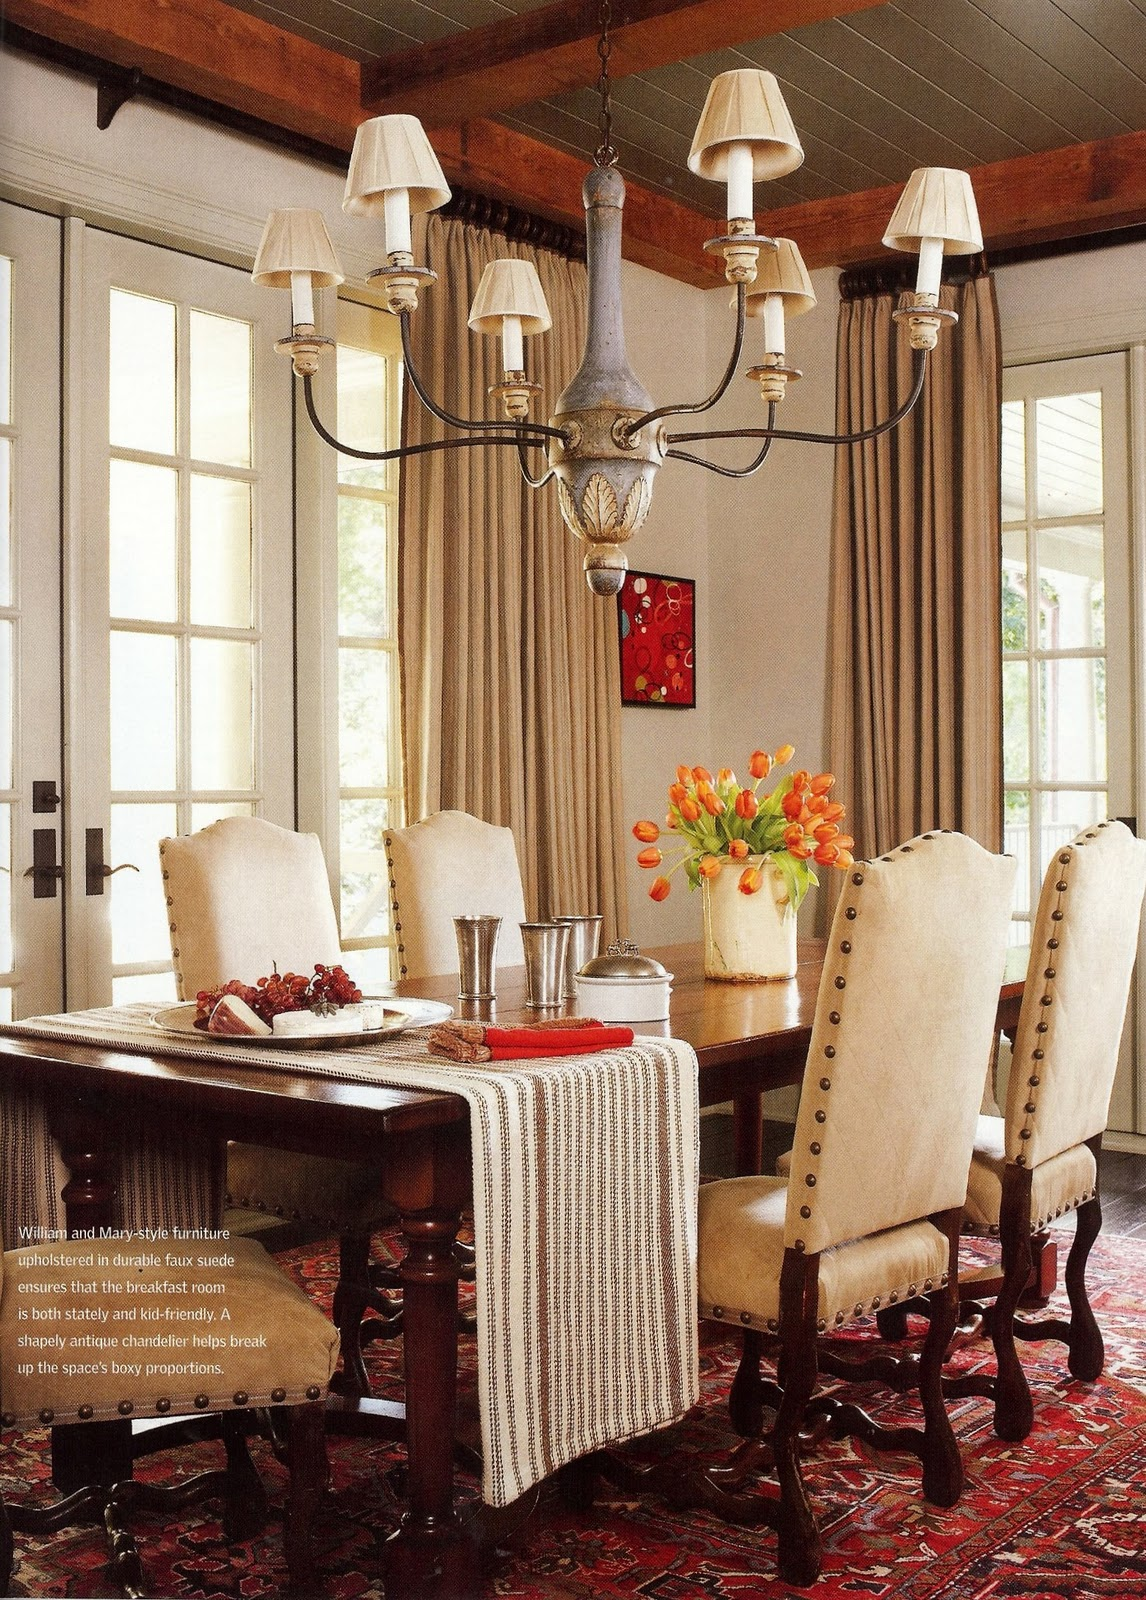 circa home featured in decor magazine - Home Decor Articles